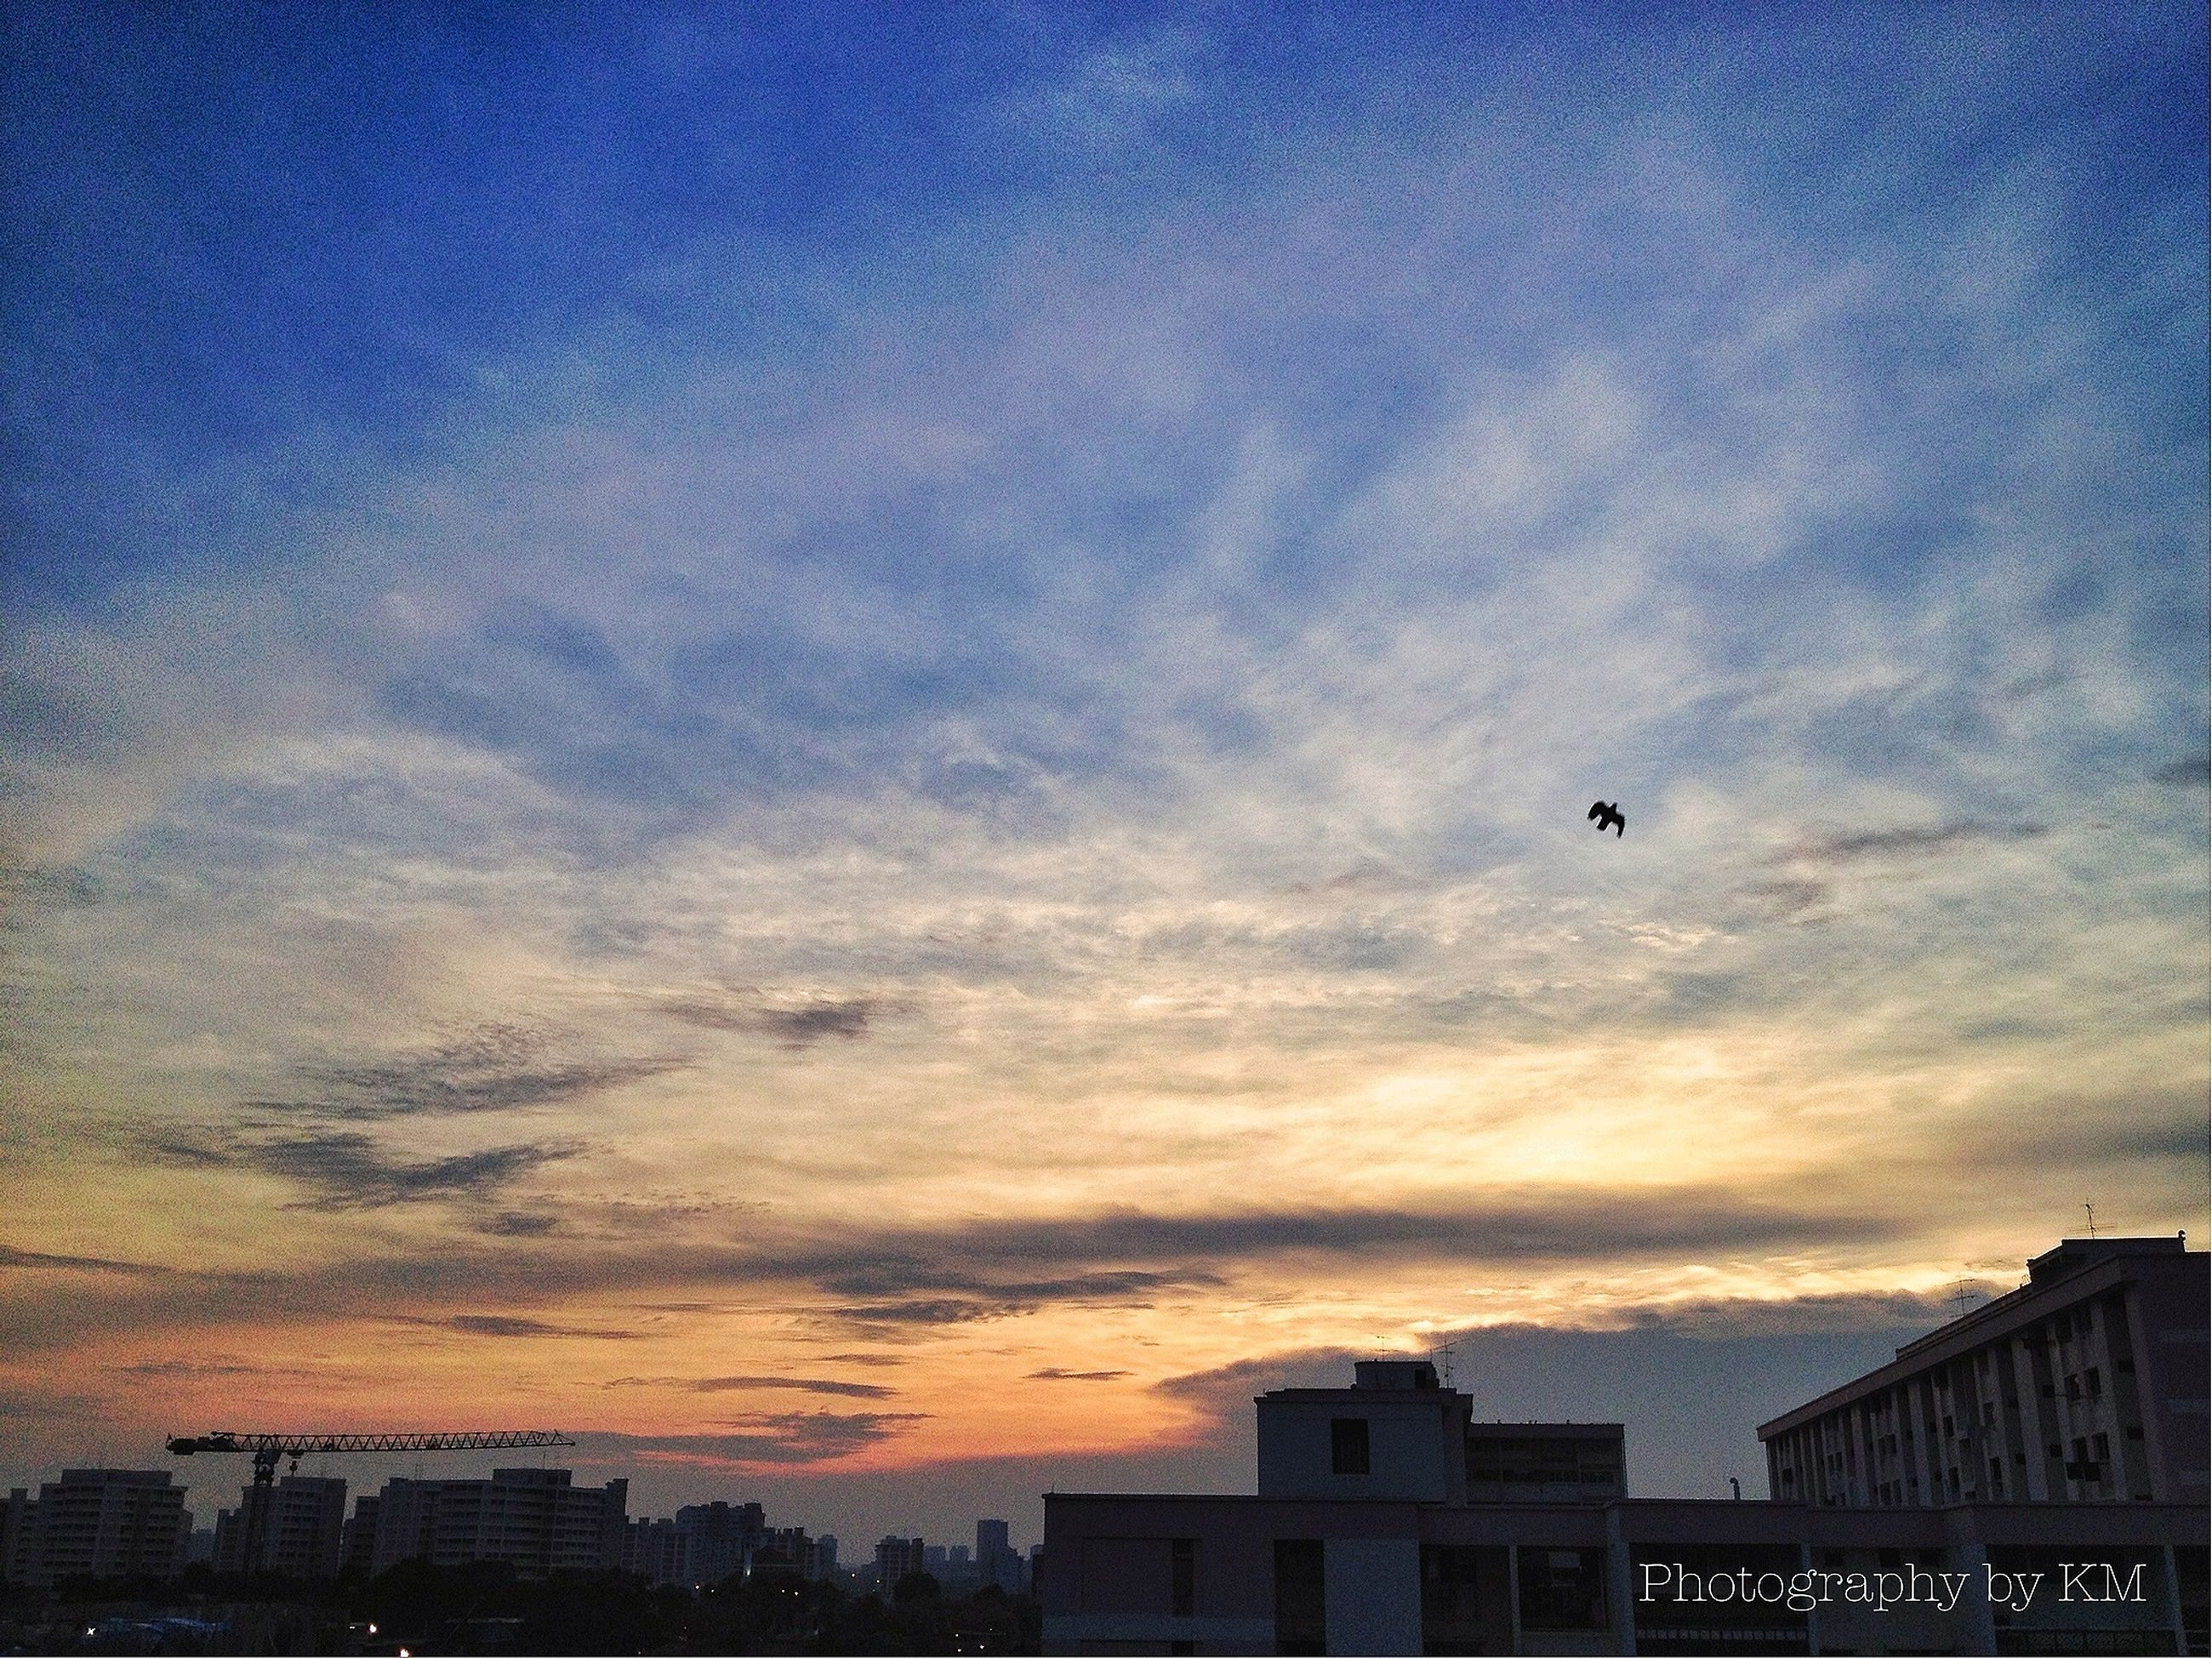 building exterior, architecture, built structure, sky, low angle view, sunset, city, cloud - sky, residential building, building, residential structure, silhouette, dusk, house, cloud, high section, outdoors, no people, residential district, cloudy